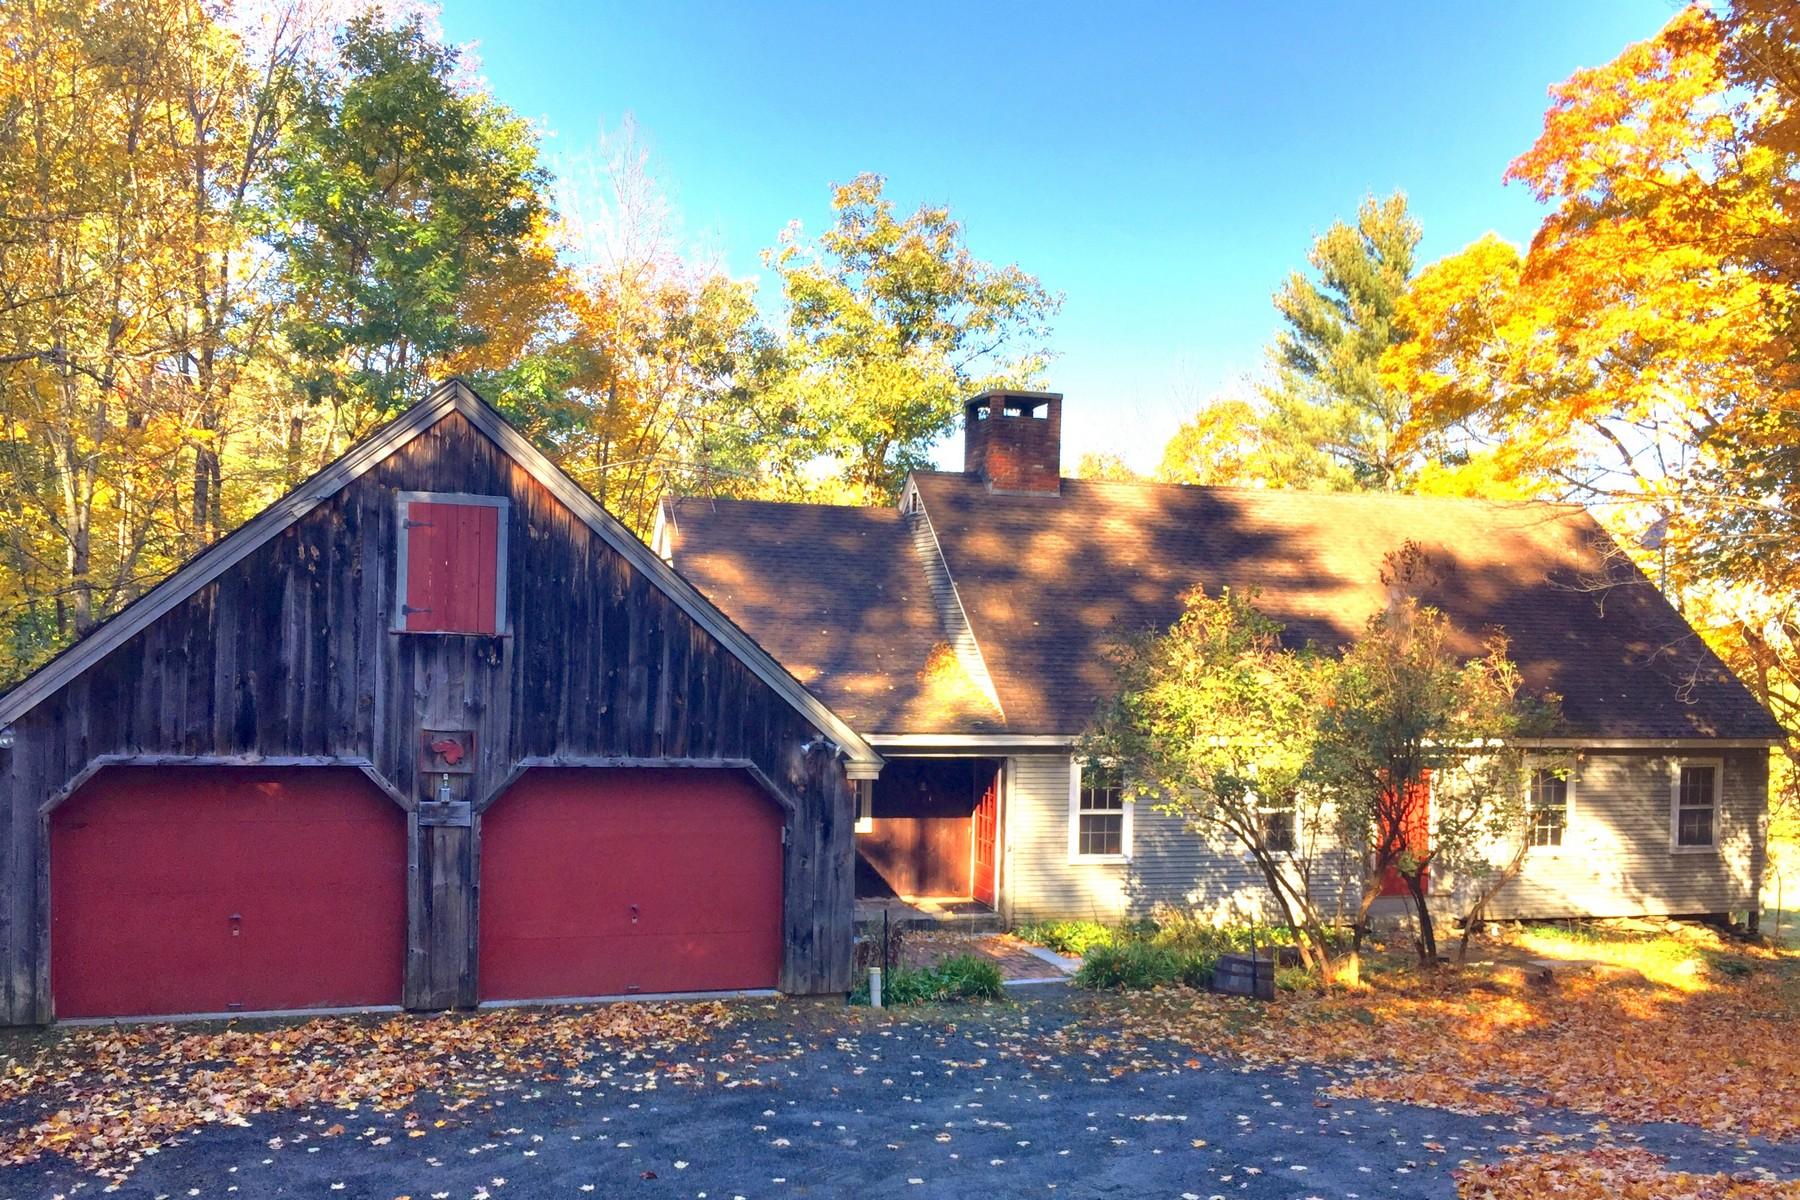 Single Family Home for Sale at 202 Dogford, Hanover Hanover, New Hampshire, 03755 United States